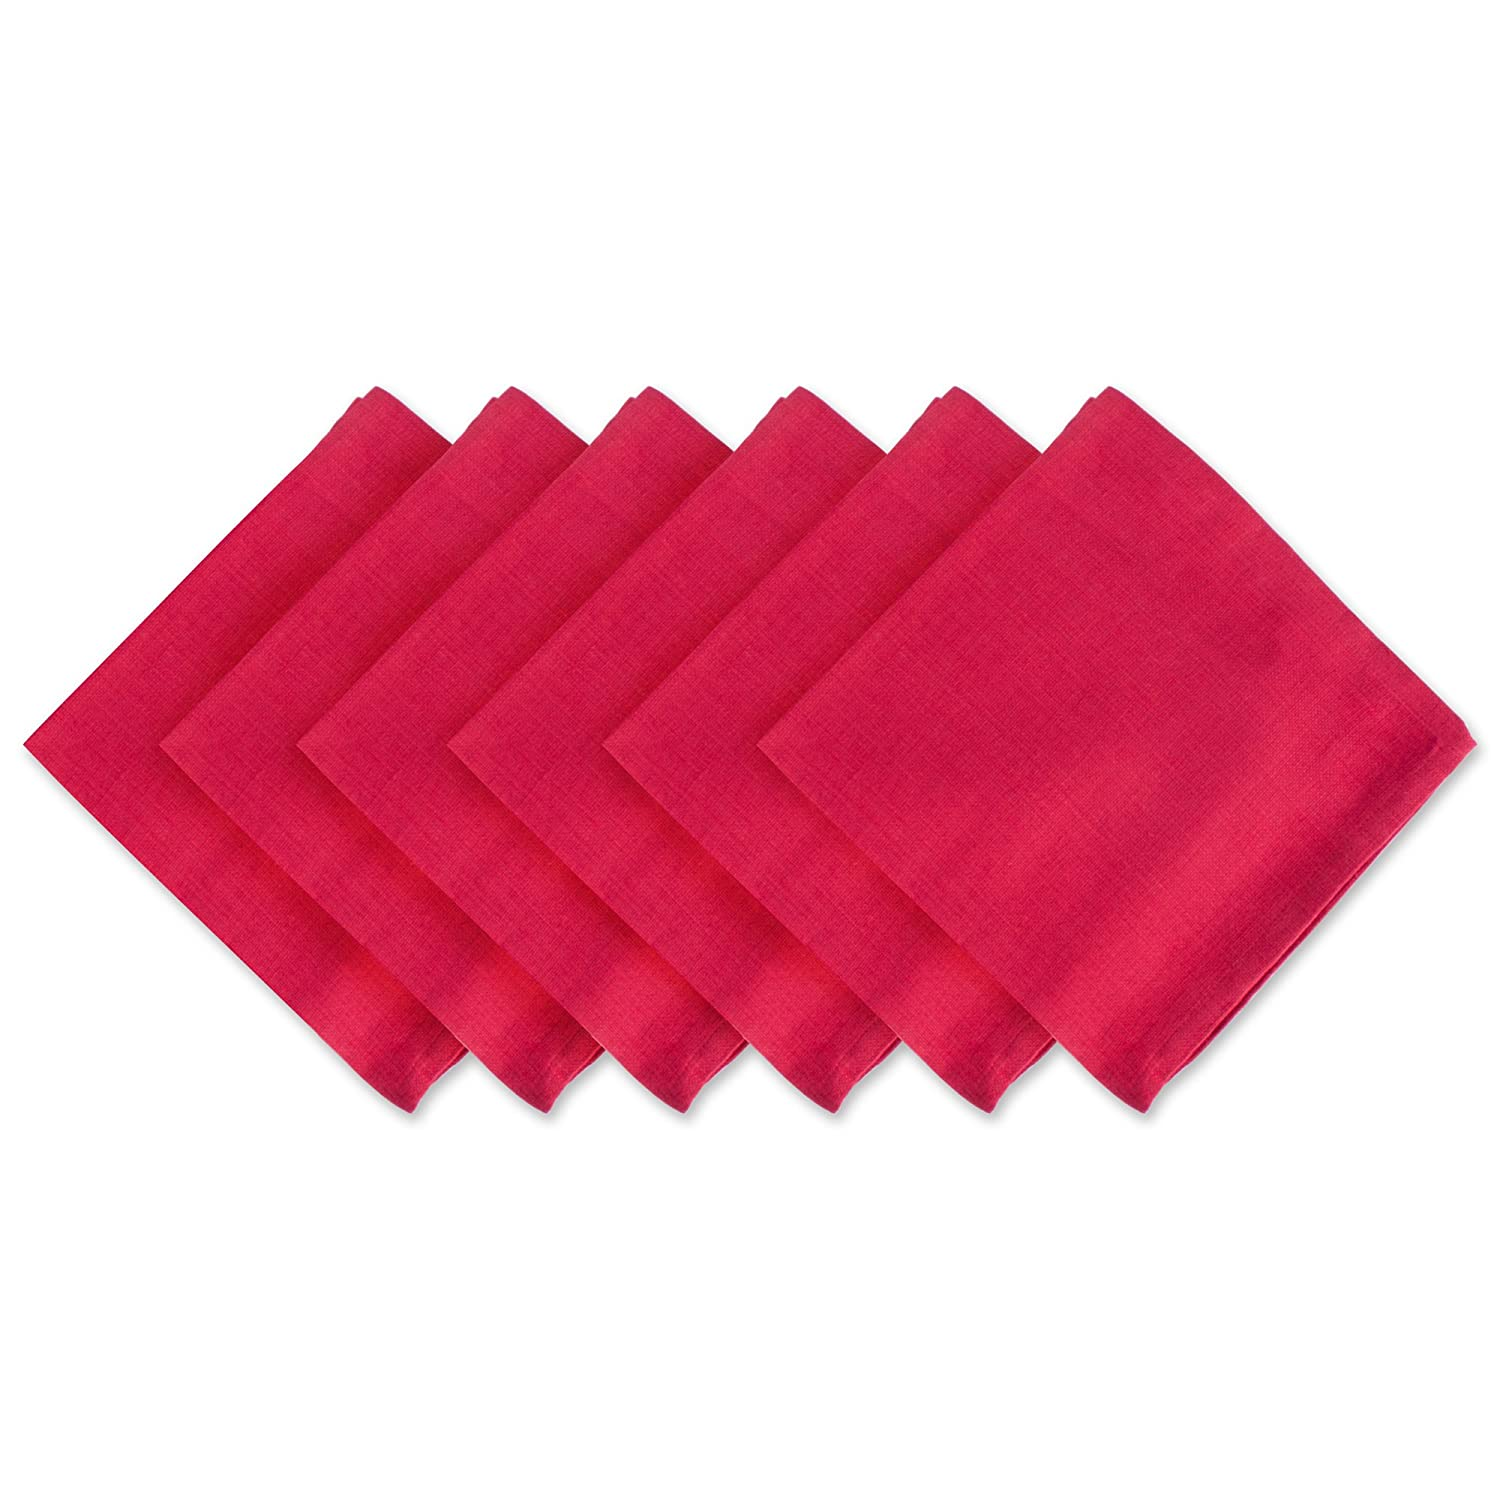 Oversized Cardinal Red Cotton Napkins Set of 6 | ChristmasTablescapeDecor.com